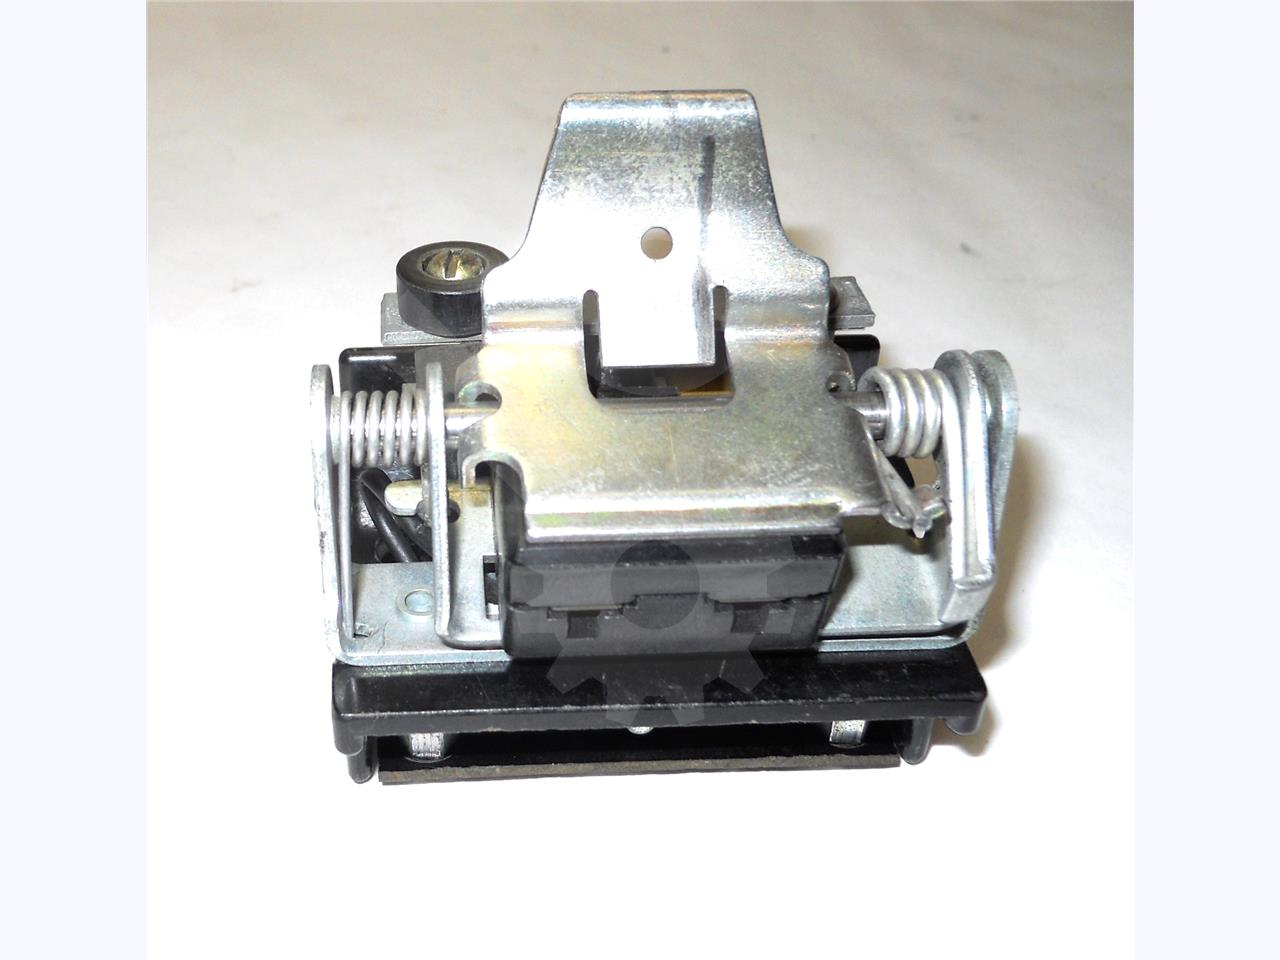 622C505G1 GE / General Electric CUT OFF SWITCH 1NO/1NC FOR AK-2-25 / AKR-30S